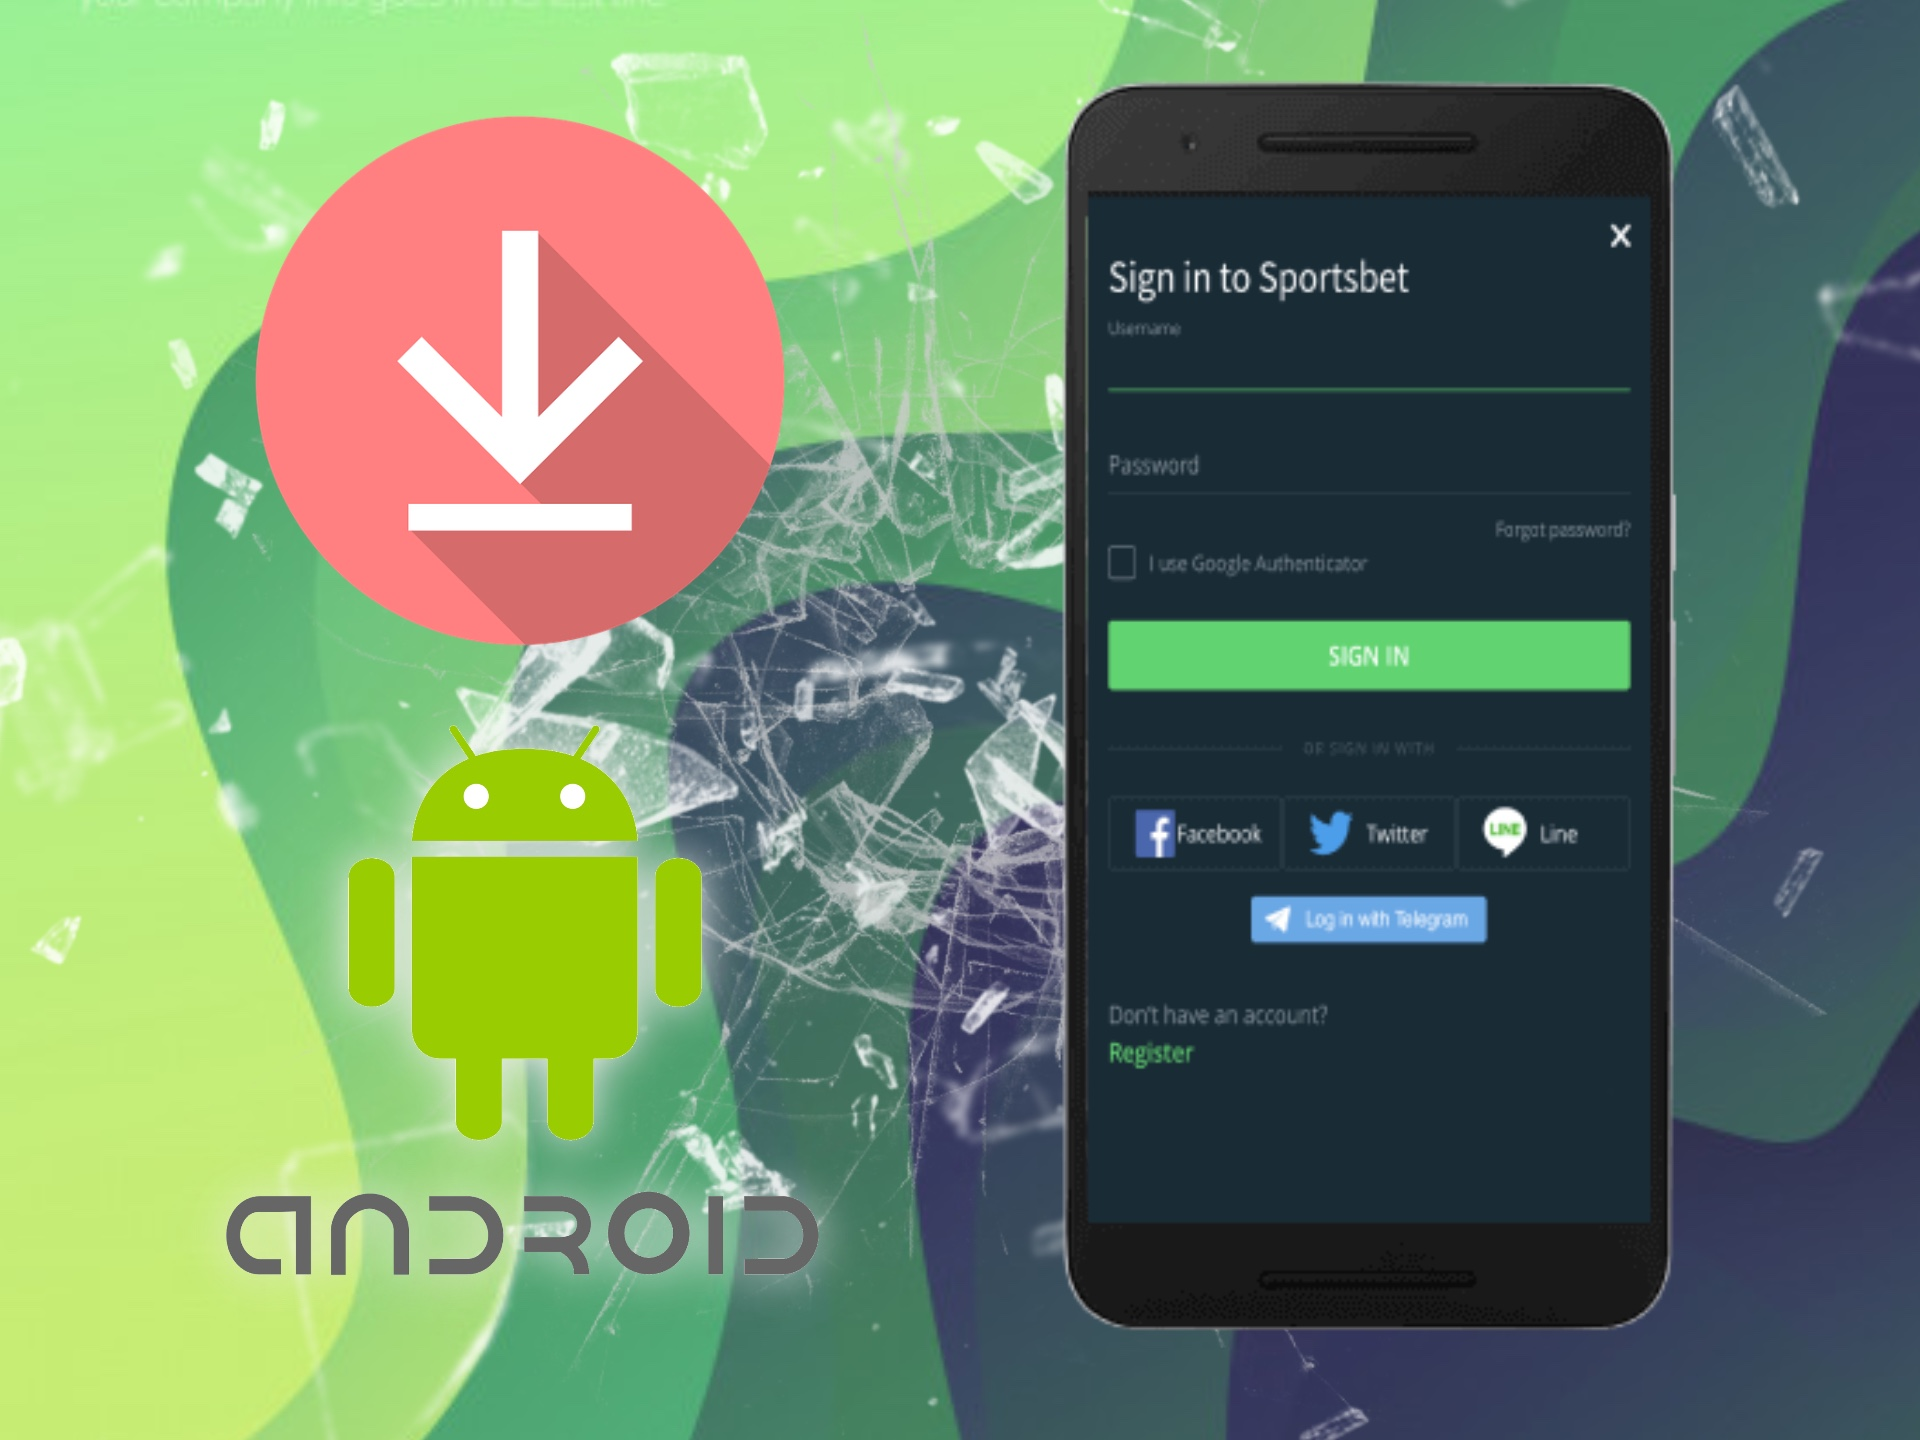 Install the Android app and install it to play at Sportsbet.io.